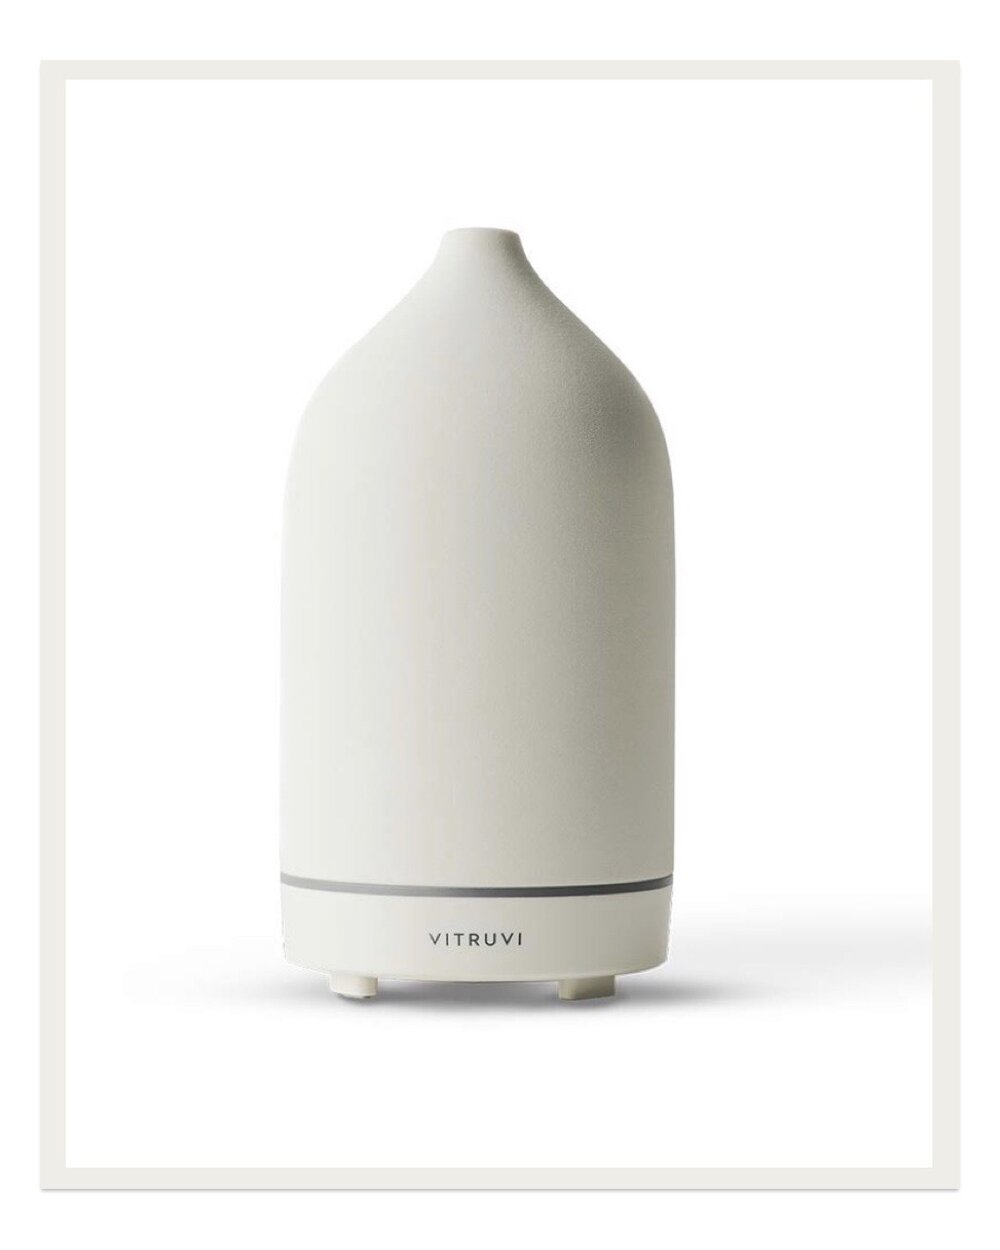 There are a lot of essential oil diffusers on the market, but I absolutely love my Vitruvi stone diffuser. It has two settings to either diffuse continuously for three hours or diffuse in intervals over the course of seven hrs. I use the three hour setting while working in the living room, then I plug it in next to my bed and use the seven hour setting while I sleep. It's so beautiful that it looks like a sculpture!